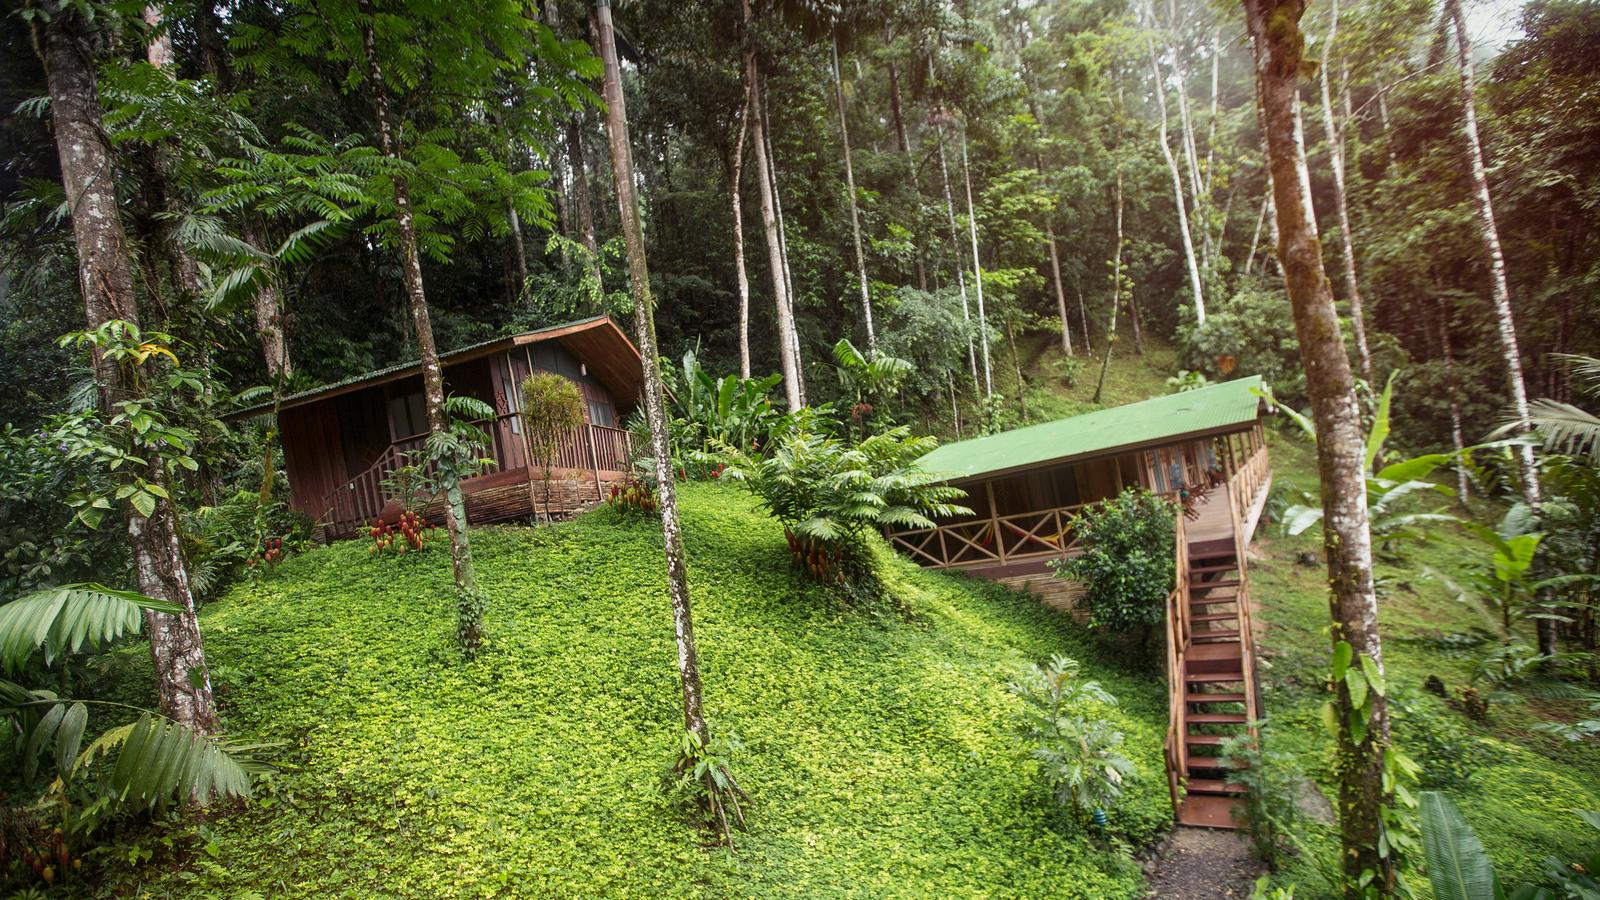 The gorgeous Pacuare lodge rests in the middle of the rainforest, Costa Rica